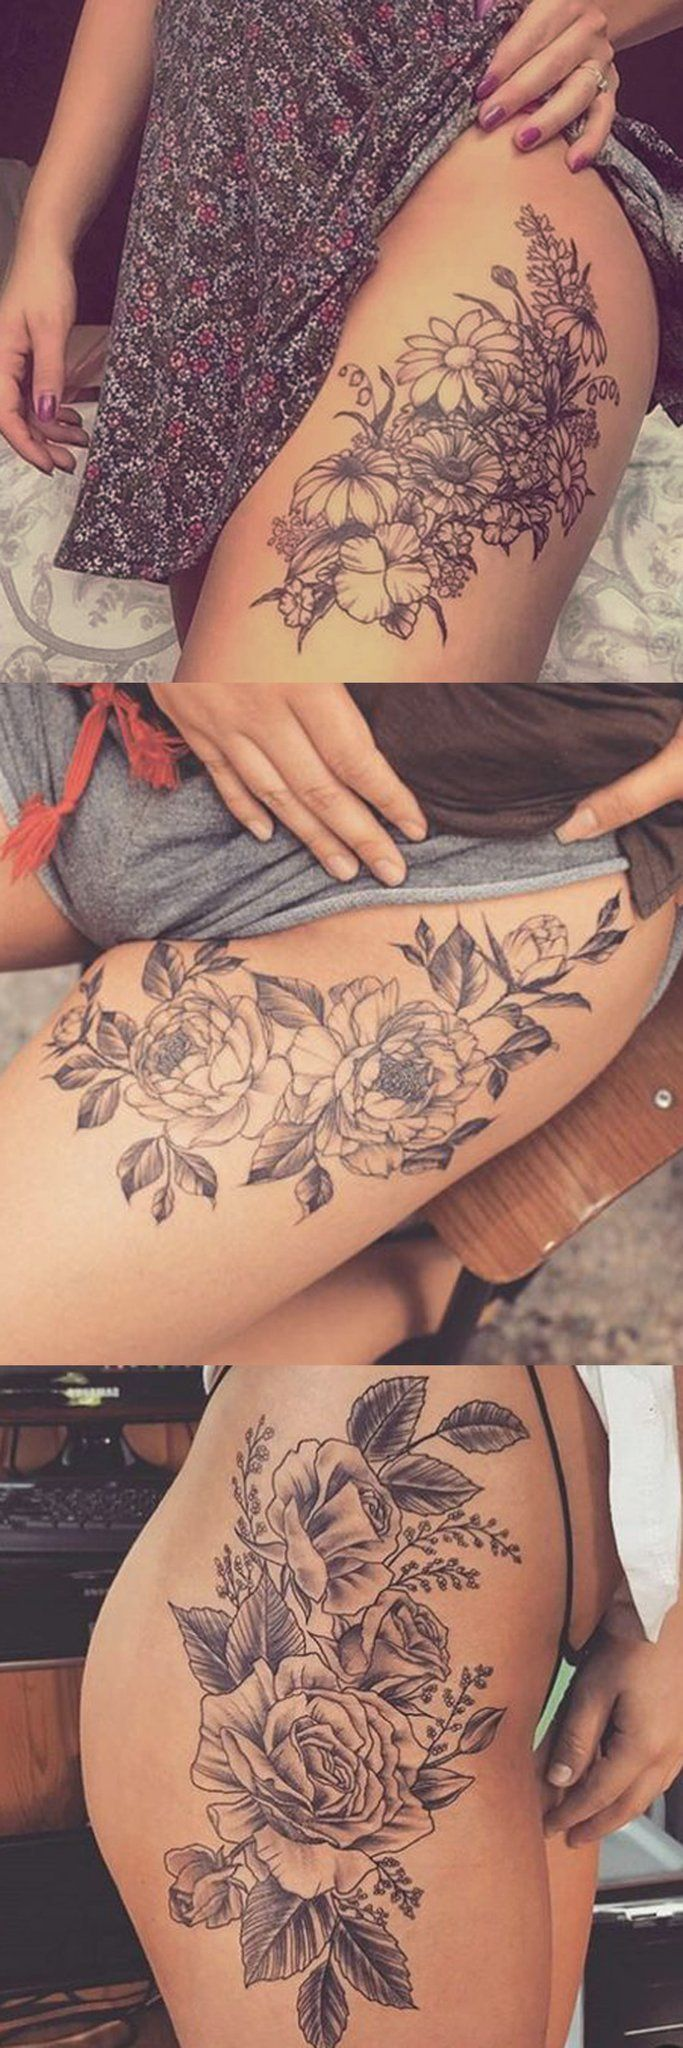 Wild Rose Thigh Tattoo Ideas at MyBodiArt.com – Delicate Floral Flower Leg Tatt